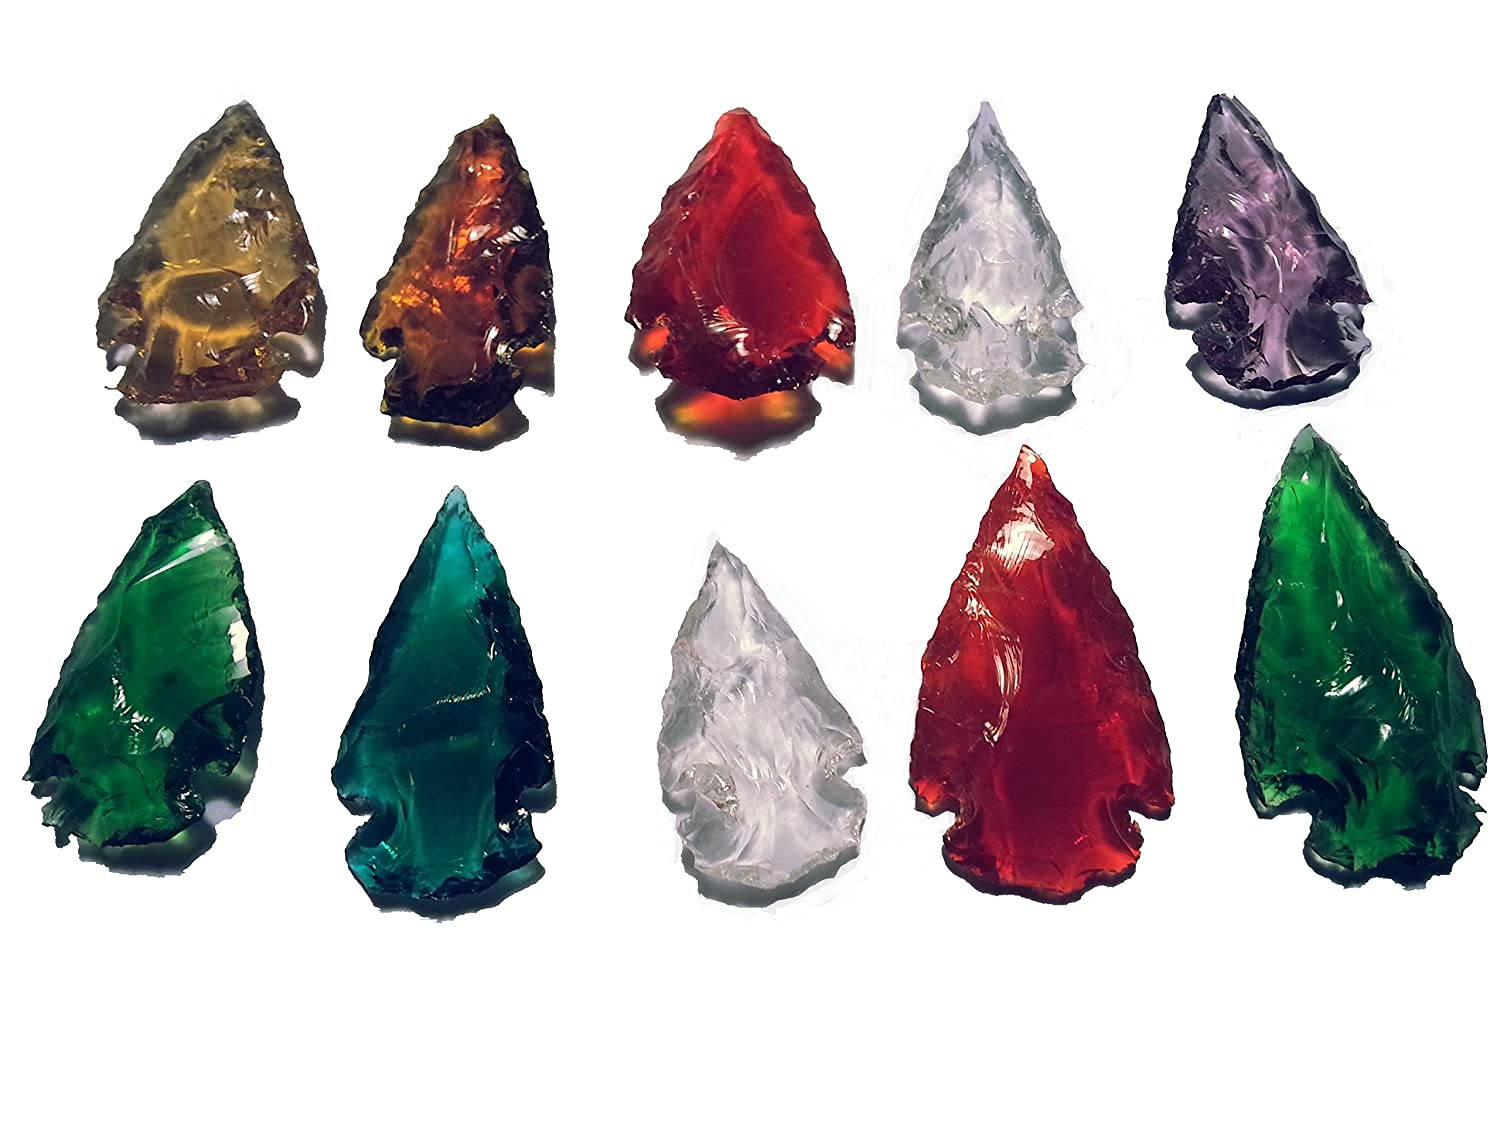 10 dyed arrowheads from colored glass Animus Imperat